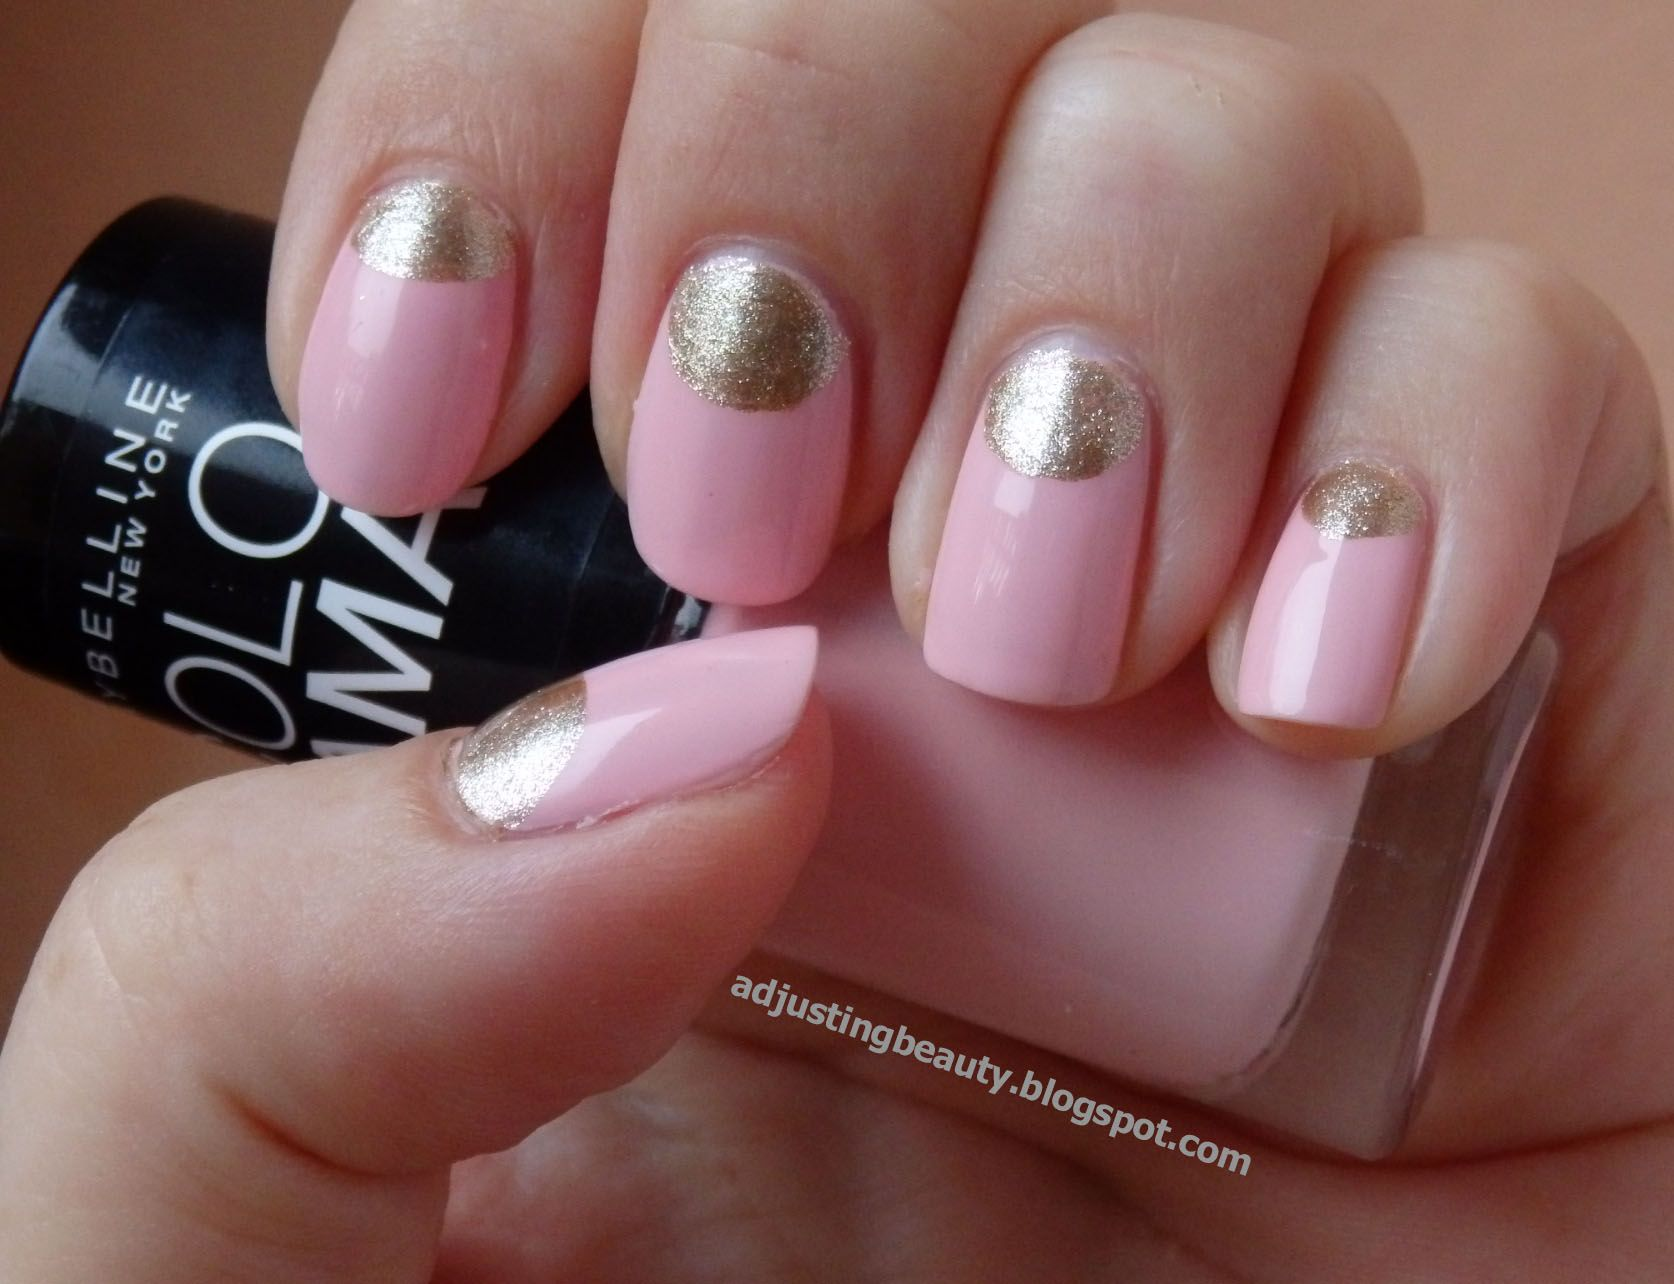 polish design fresh nail best pink colorful designs pale nailsbest essie nails light